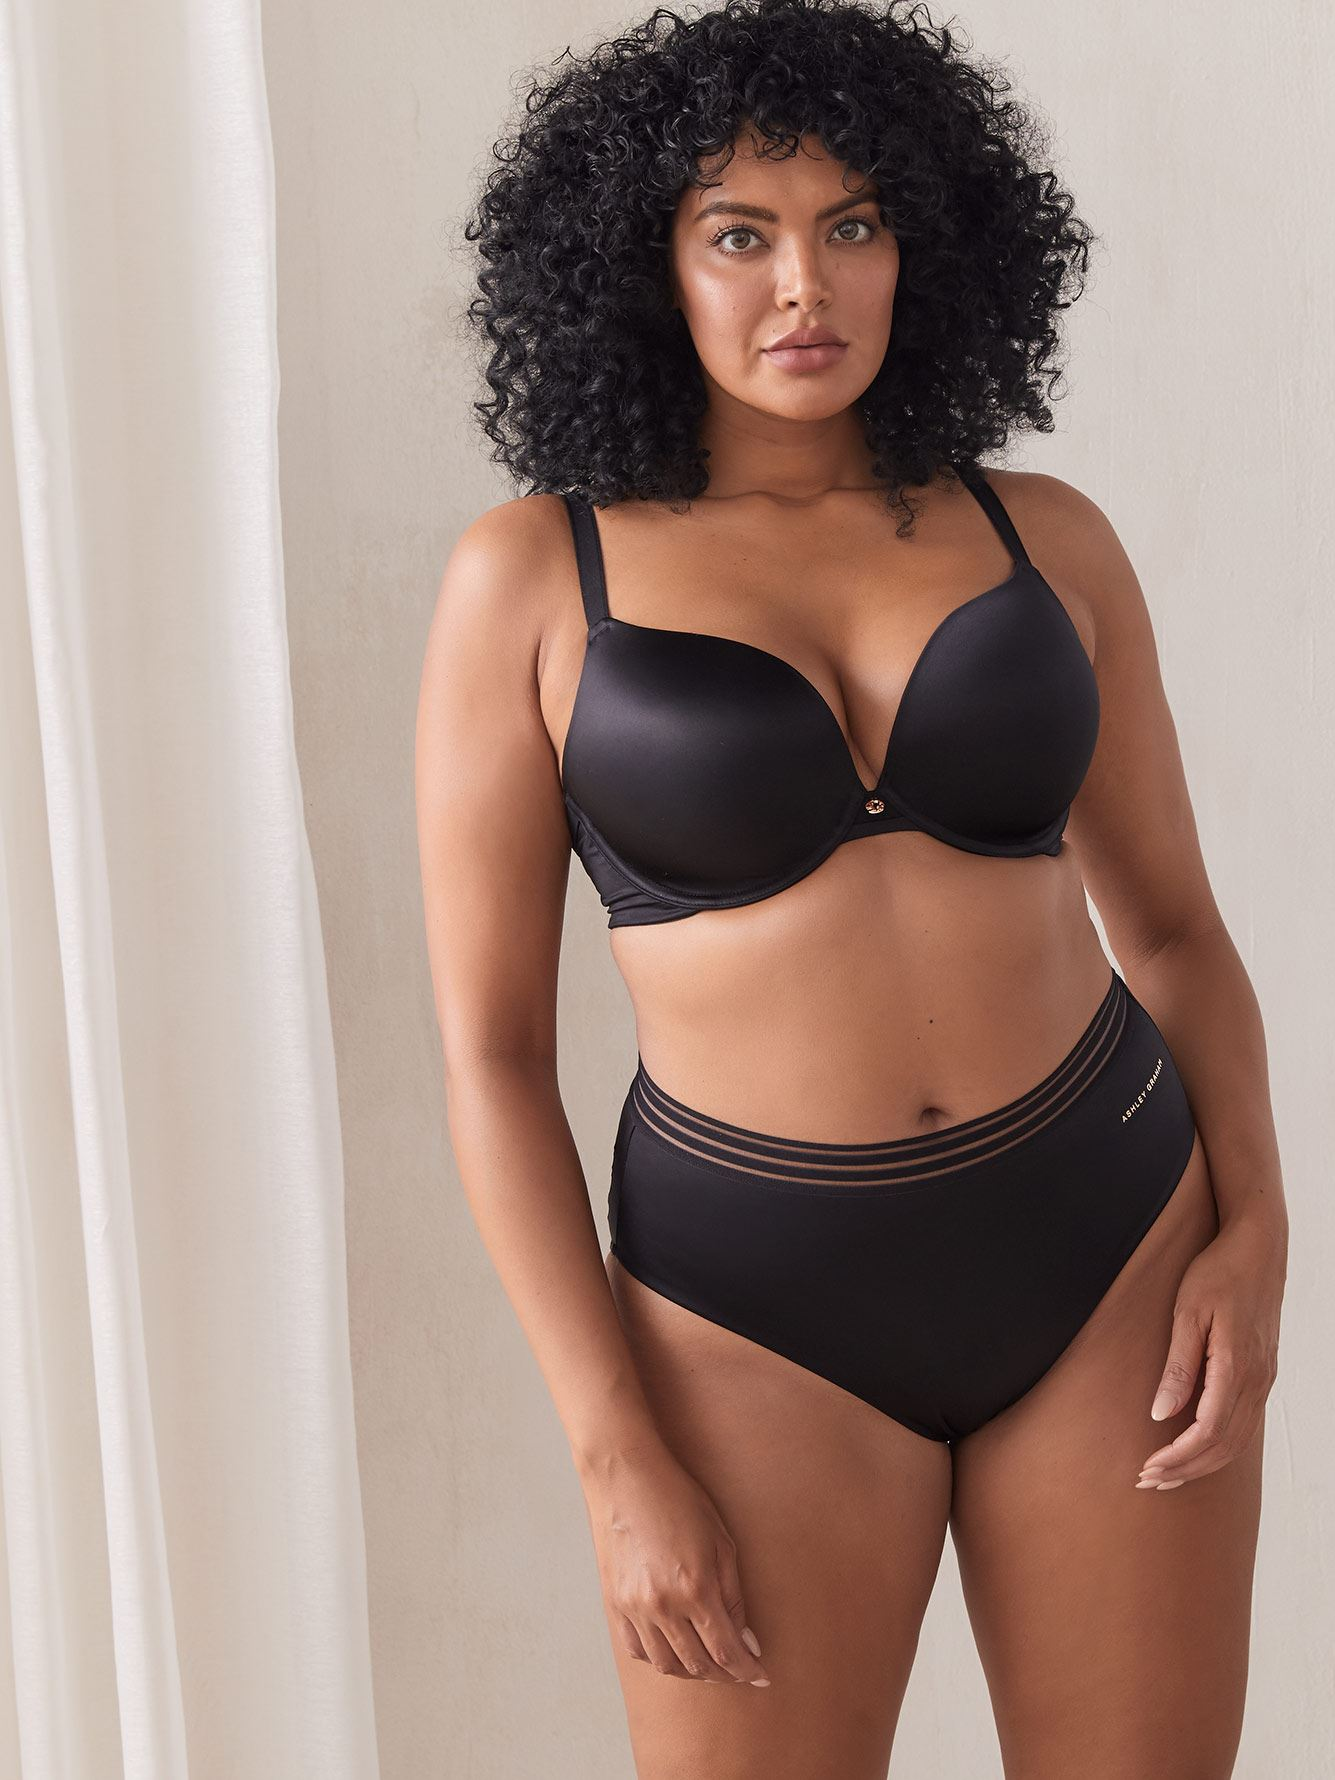 Idol Plunge Bra, G & H Cups - Ashley Graham